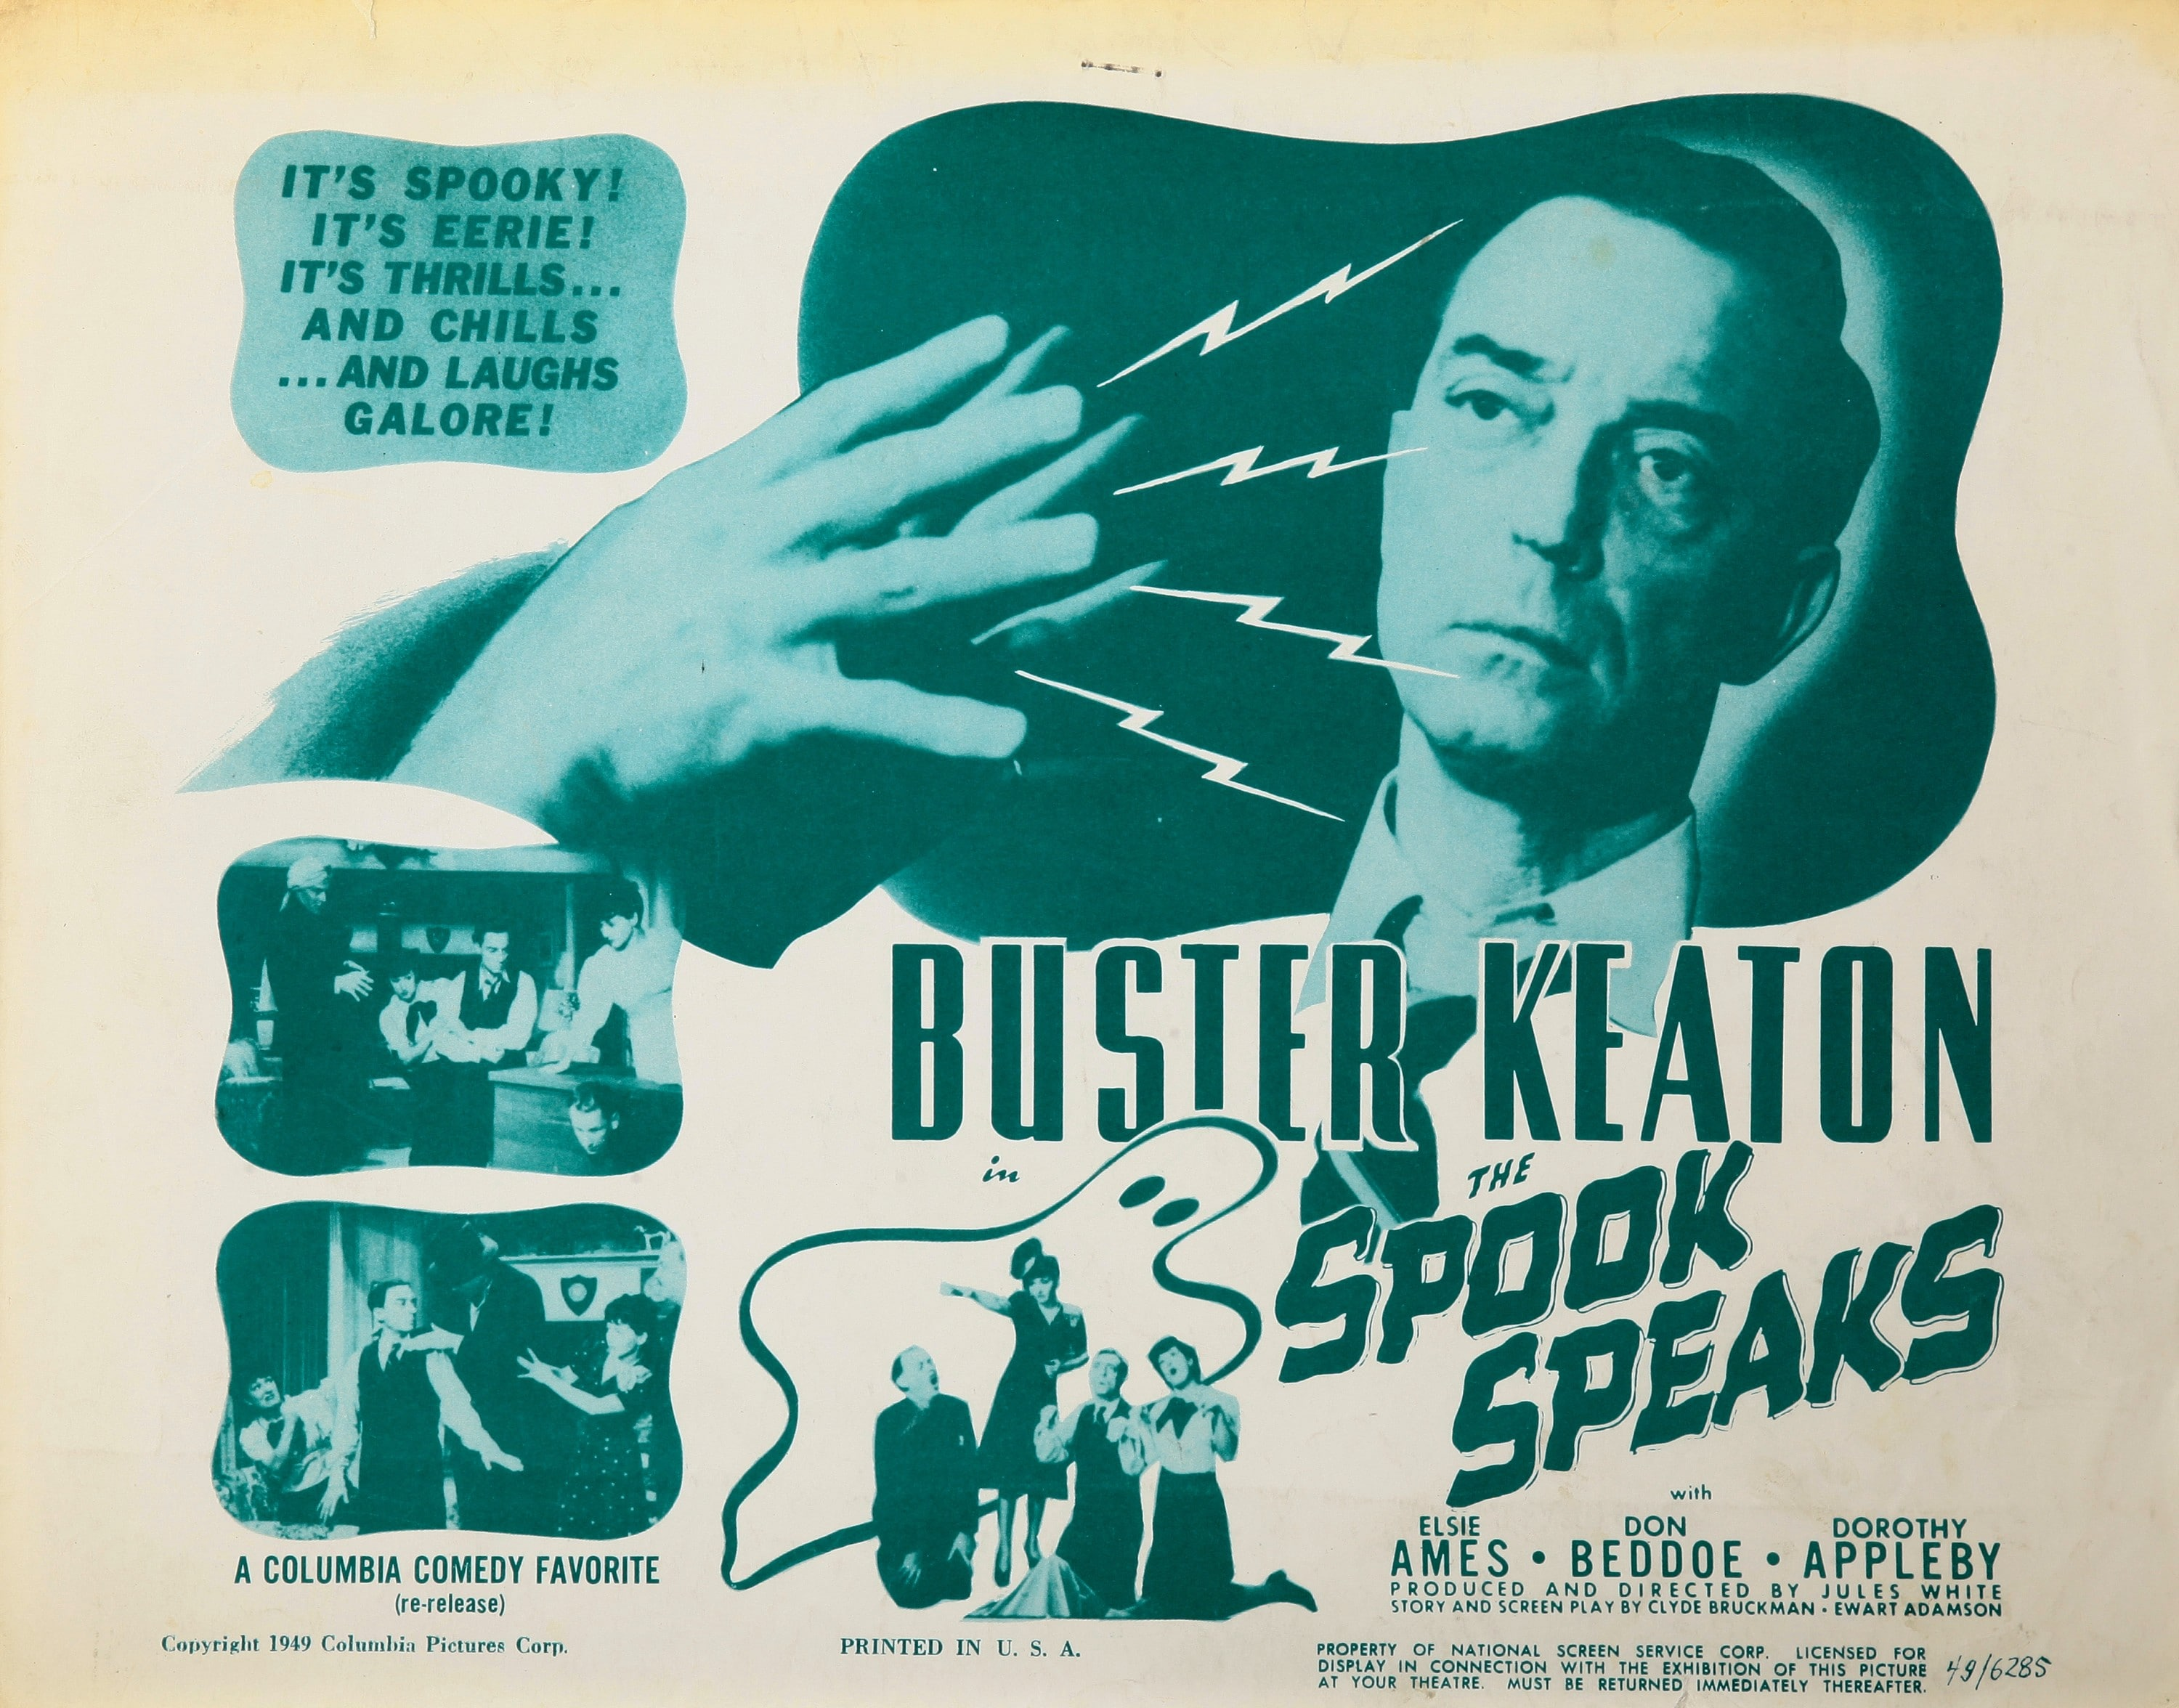 1601367907347_40.jpg - La locandina di The Spook Speaks, 1940